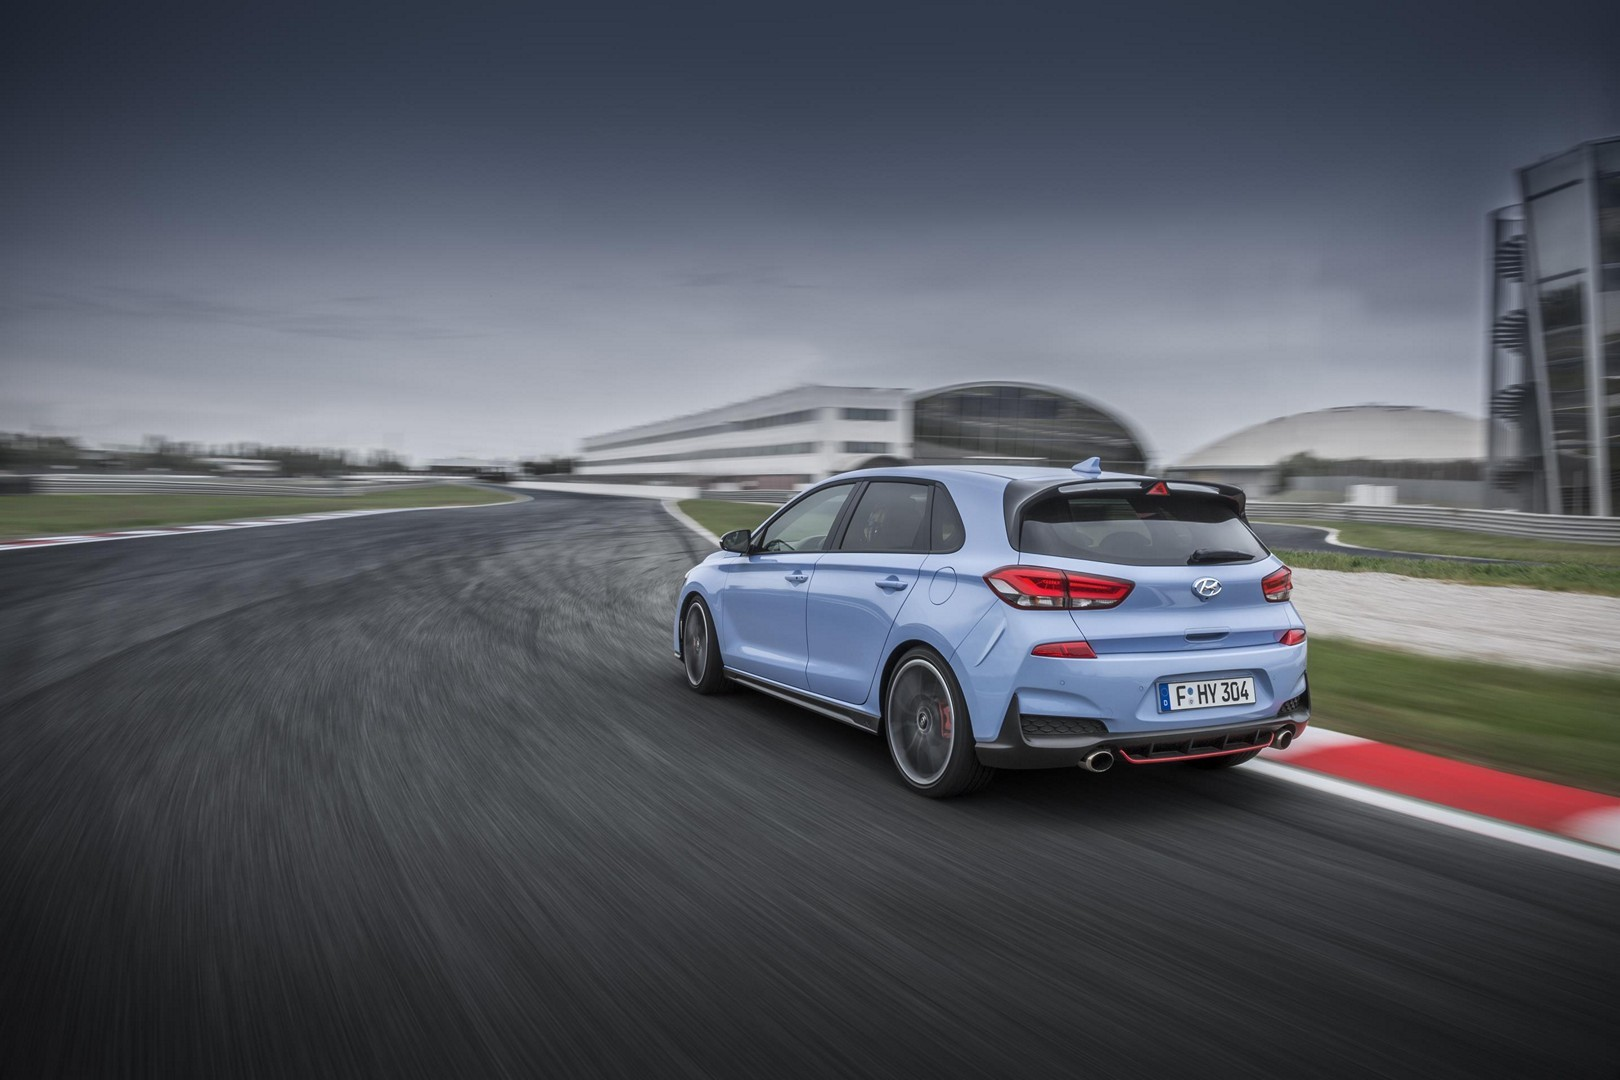 2018 hyundai i30 n. beautiful 2018 2018 hyundai i30 n revealed with 275 hp elsd and drive modes throughout hyundai n